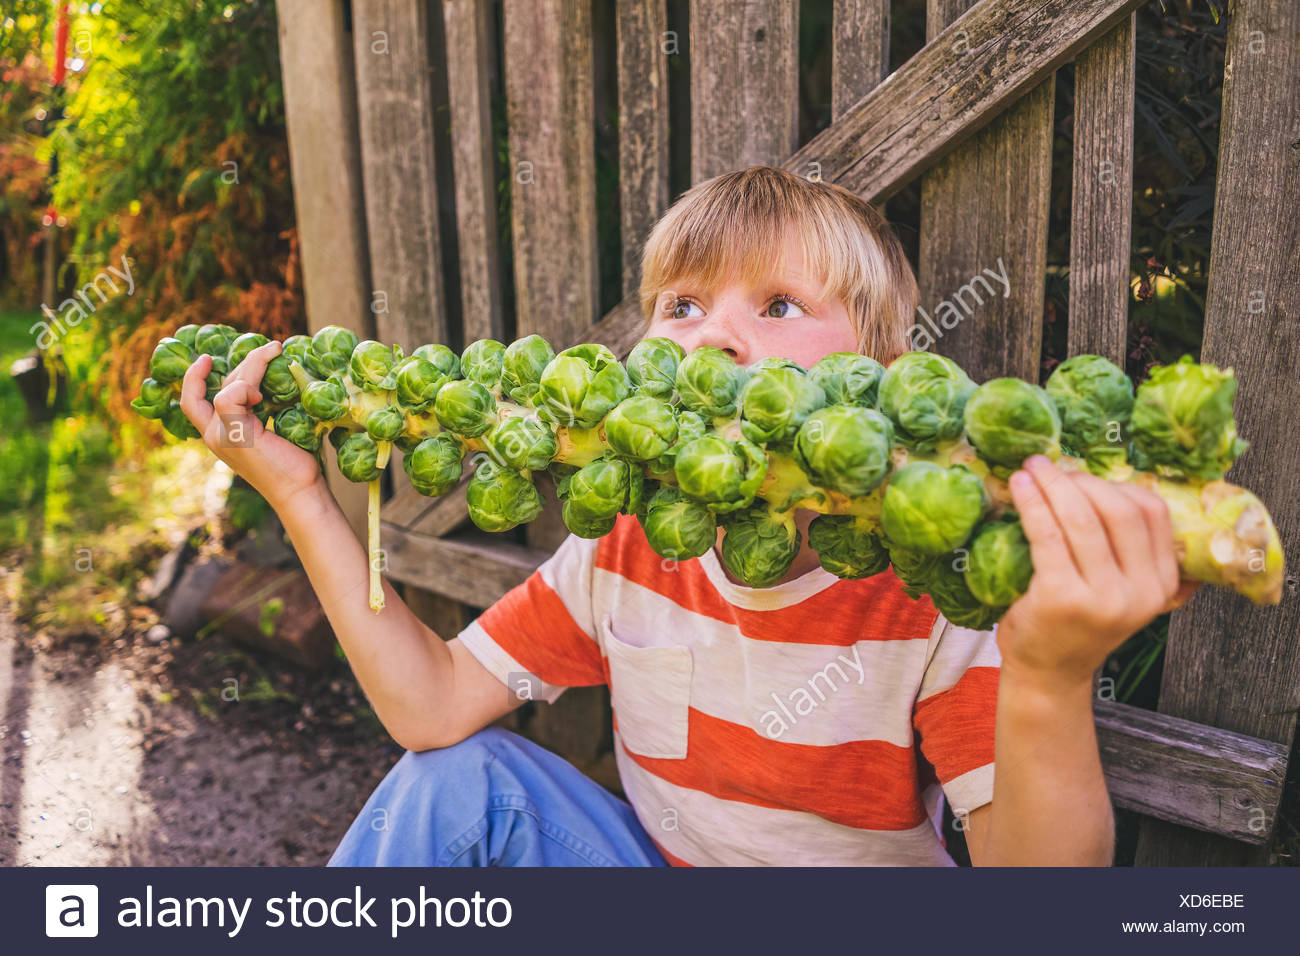 Boy eating a stalk of brussels sprouts - Stock Image